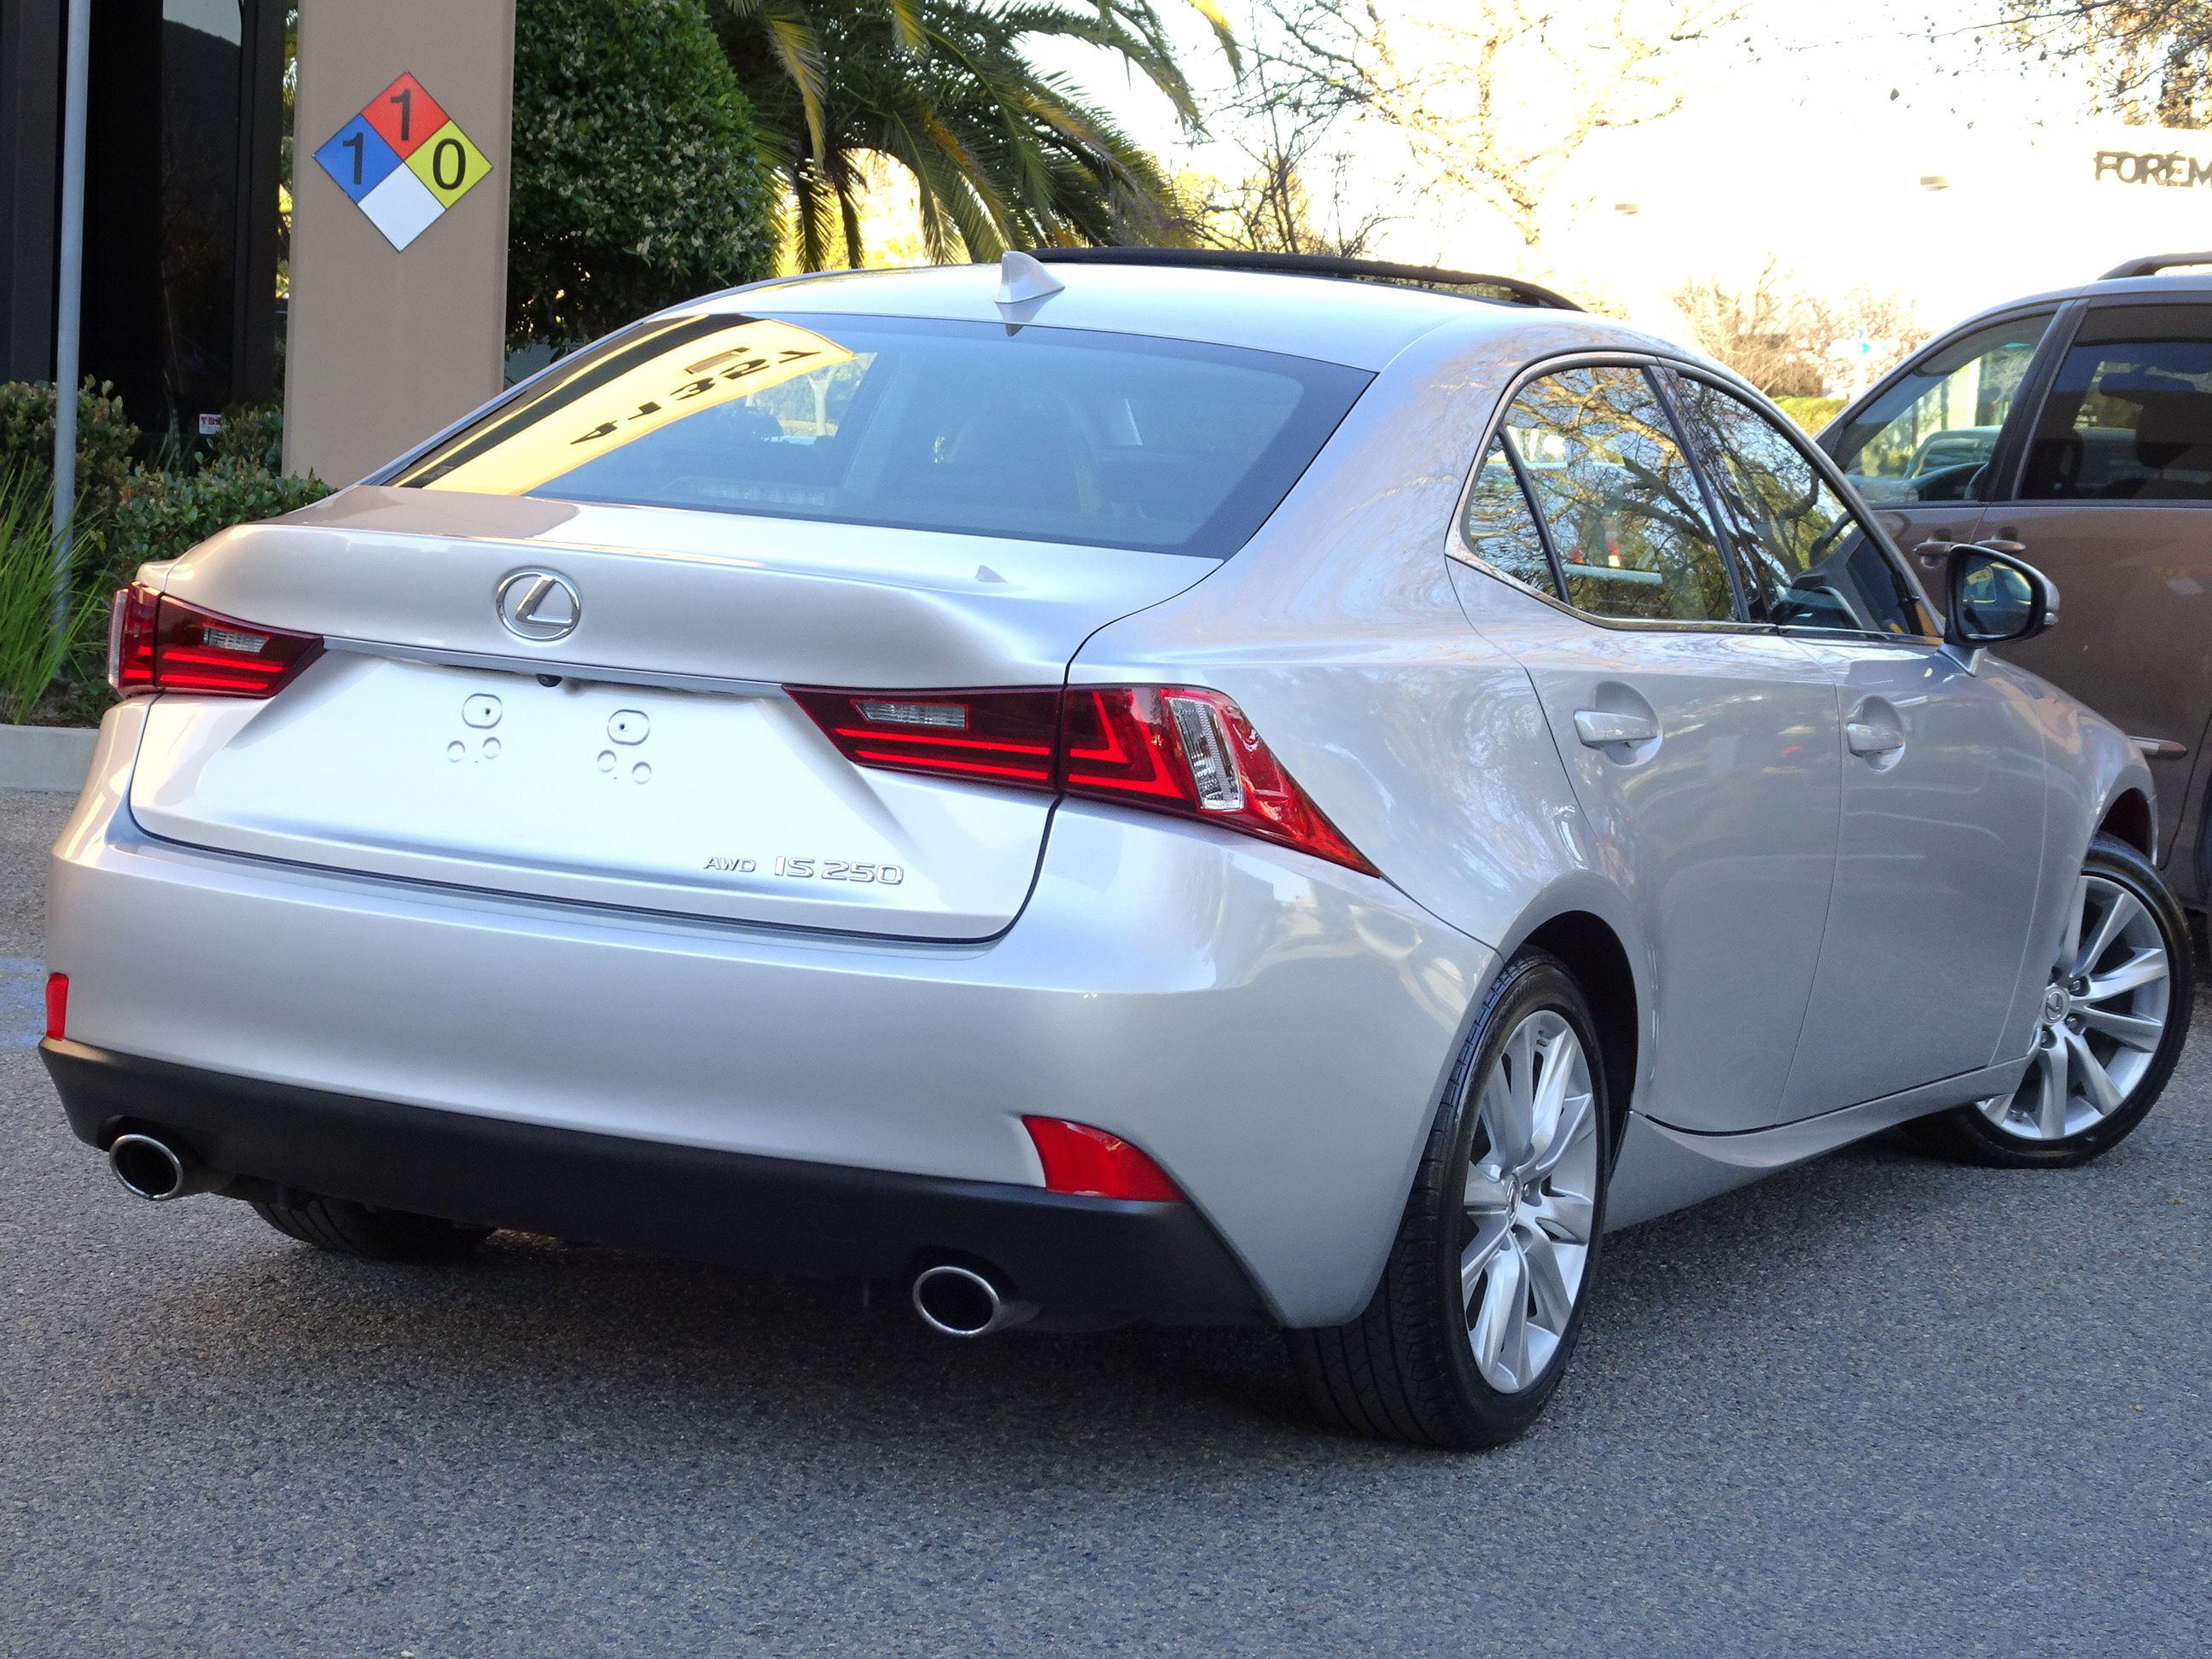 2015 Lexus IS 250 - 1 OWNER - PREMIUM PKG - REAR VIEW CAMERA - LEASE ...